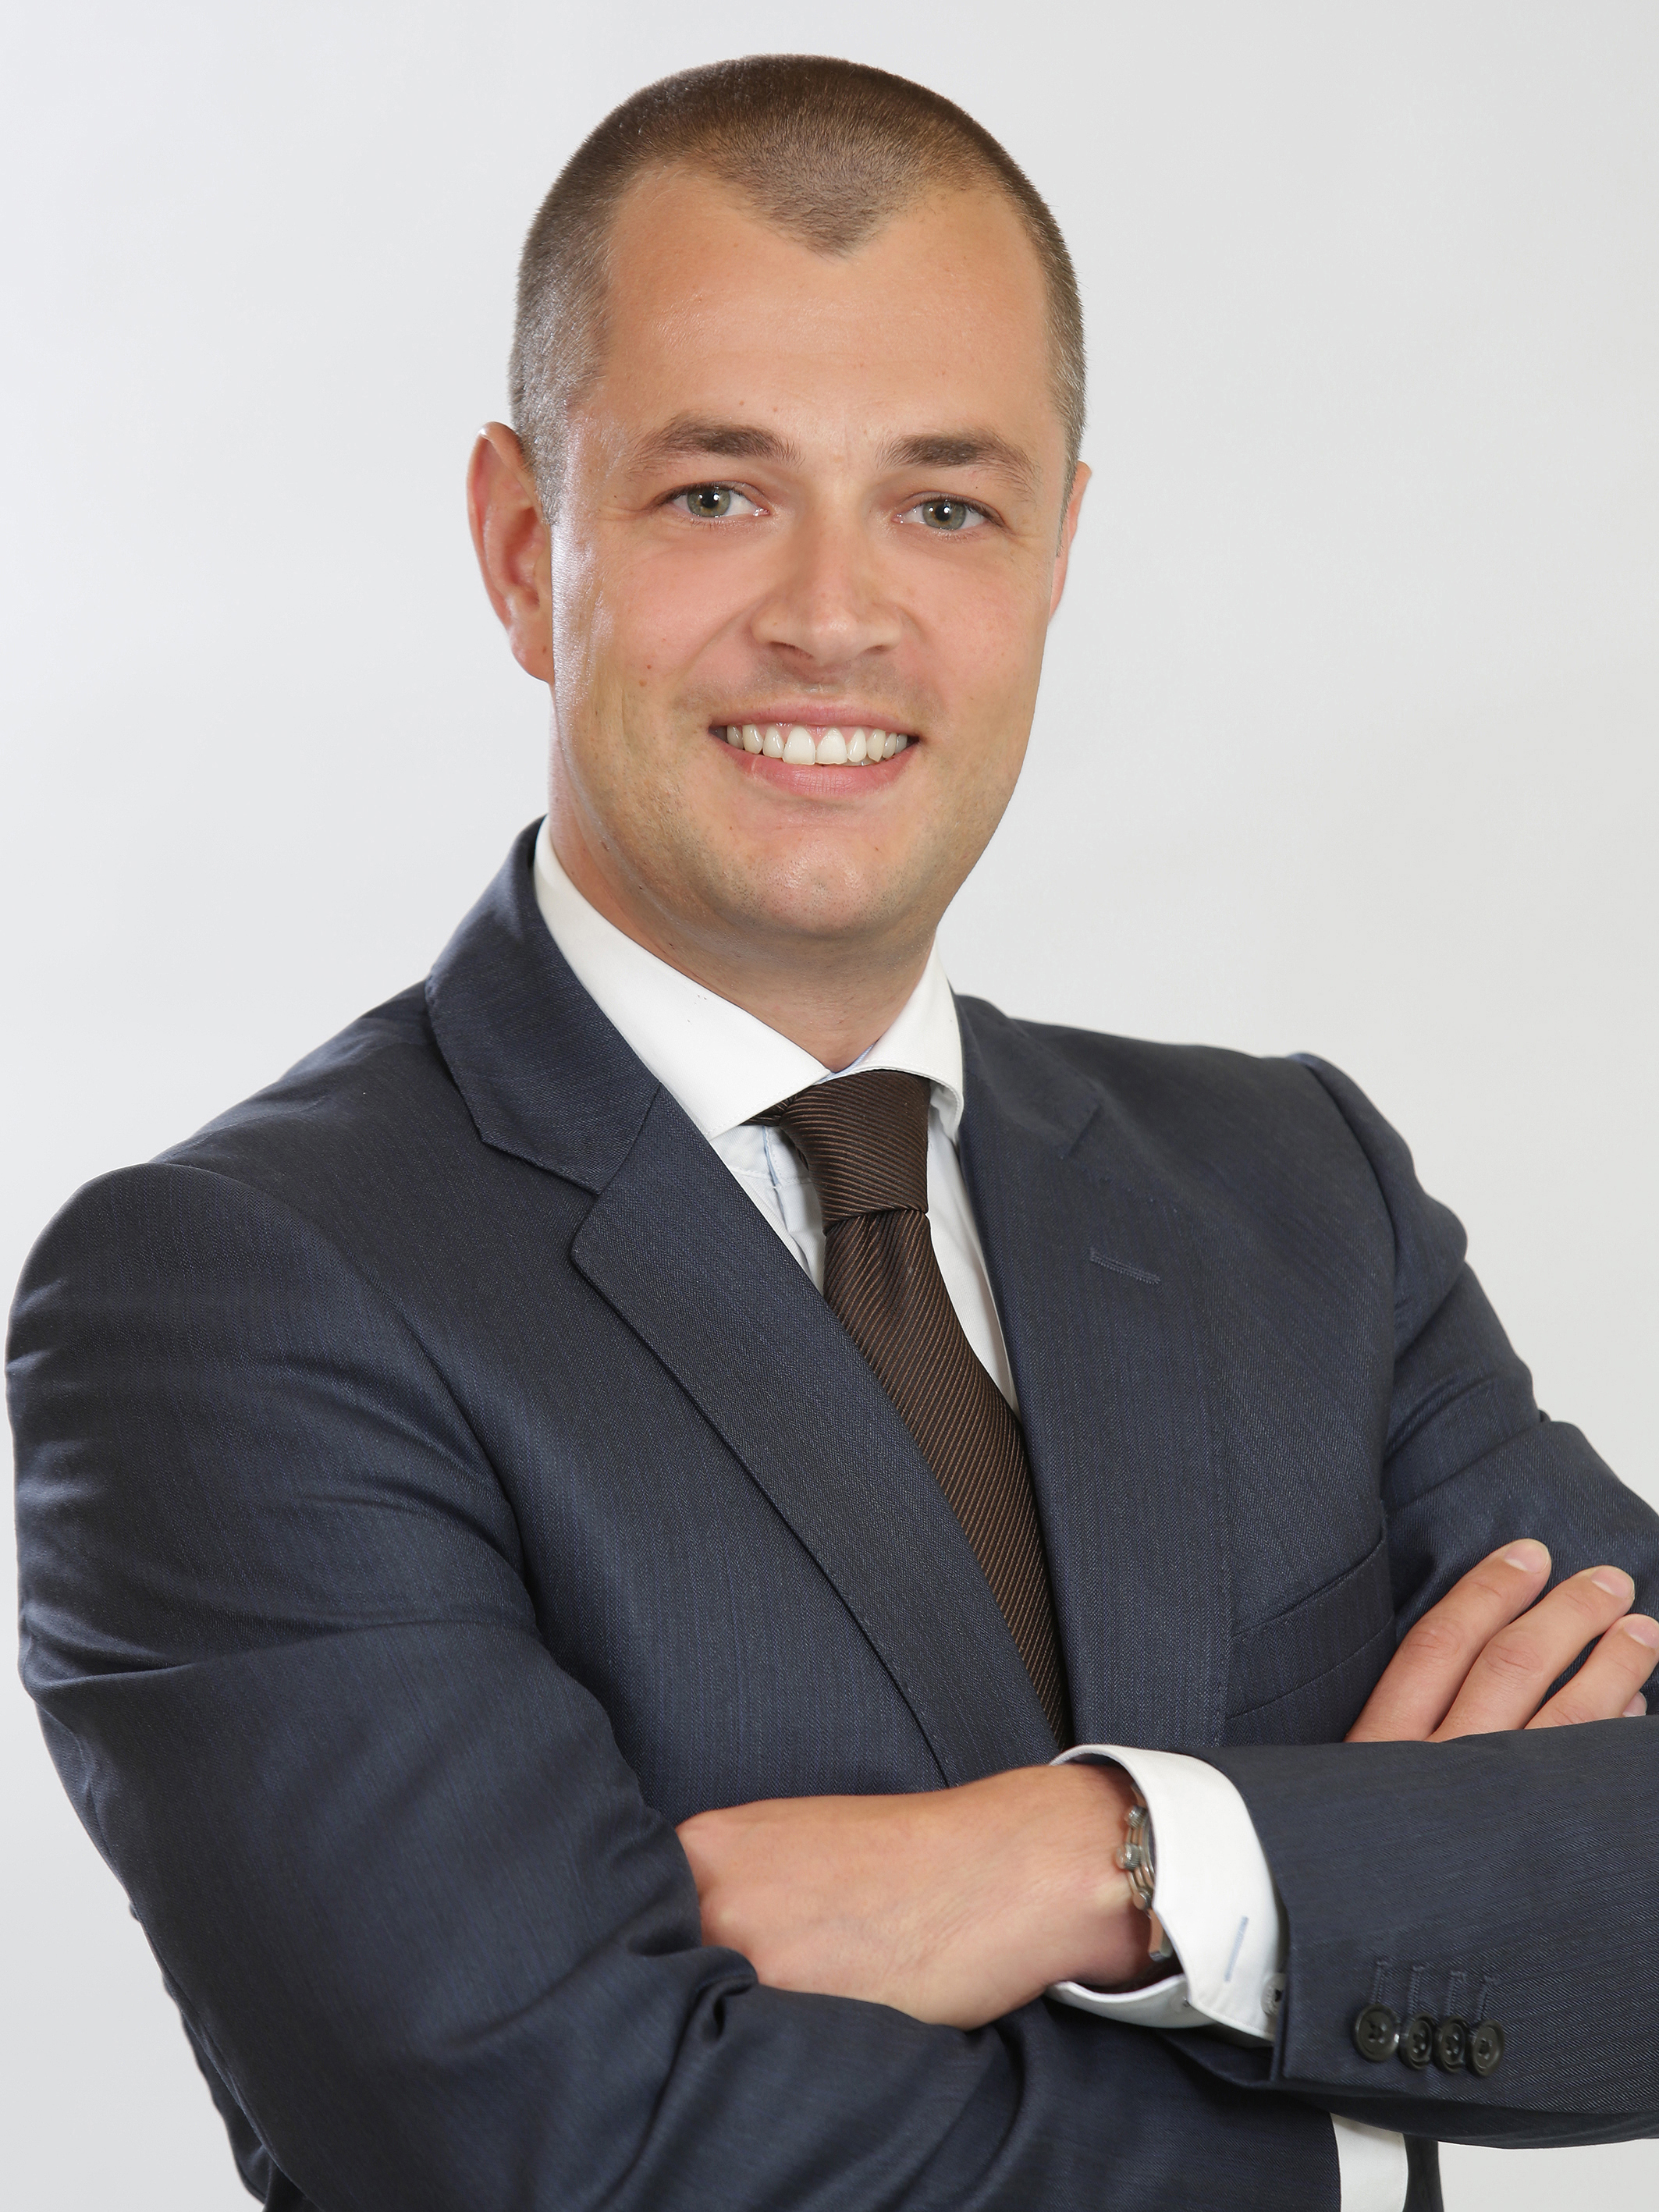 Bram Verhoeven, Senior Vice President, Regional Head Northern Europe